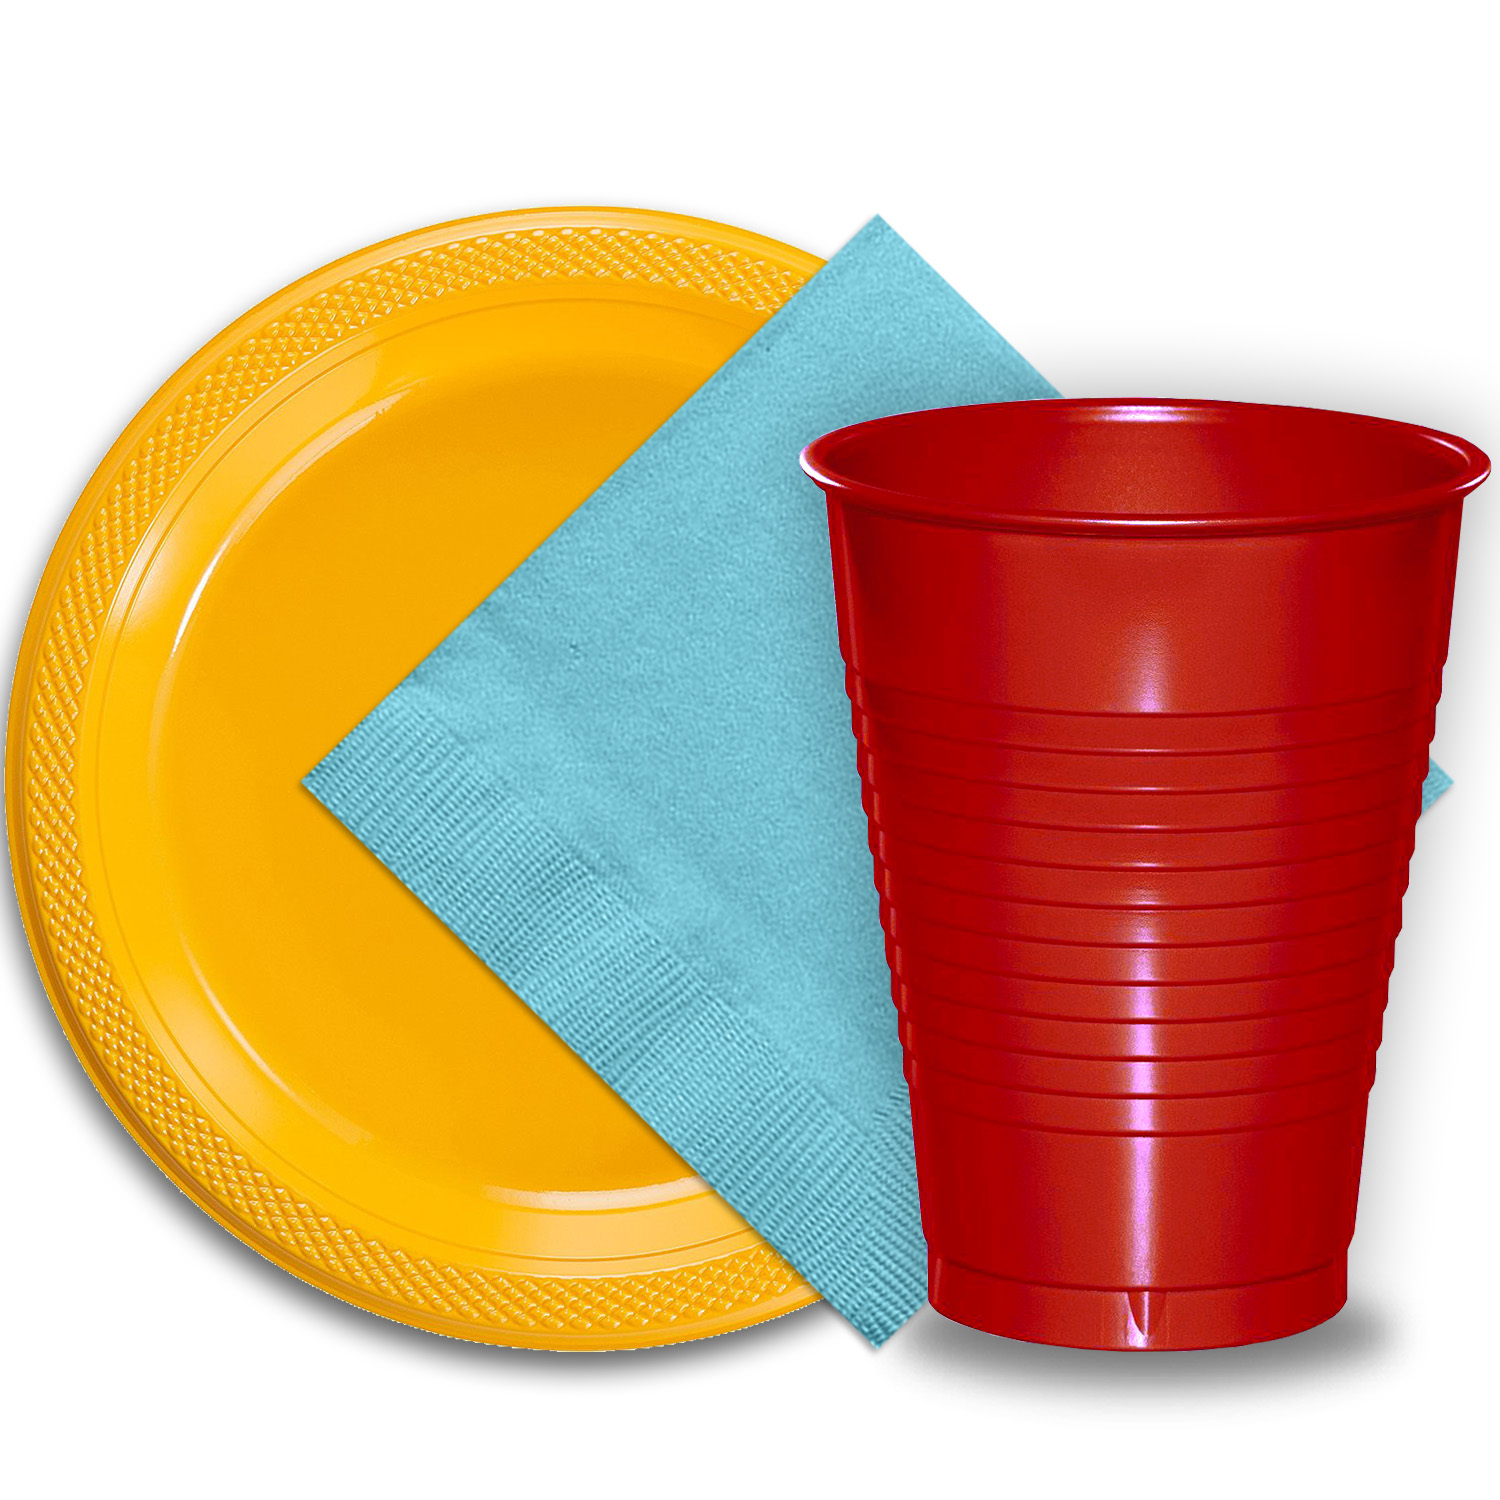 "50 Yellow Plastic Plates (9""), 50 Red Plastic Cups (12 oz.), and 50 Light Blue Paper Napkins, Dazzelling Colored Disposable Party Supplies Tableware Set for Fifty Guests."